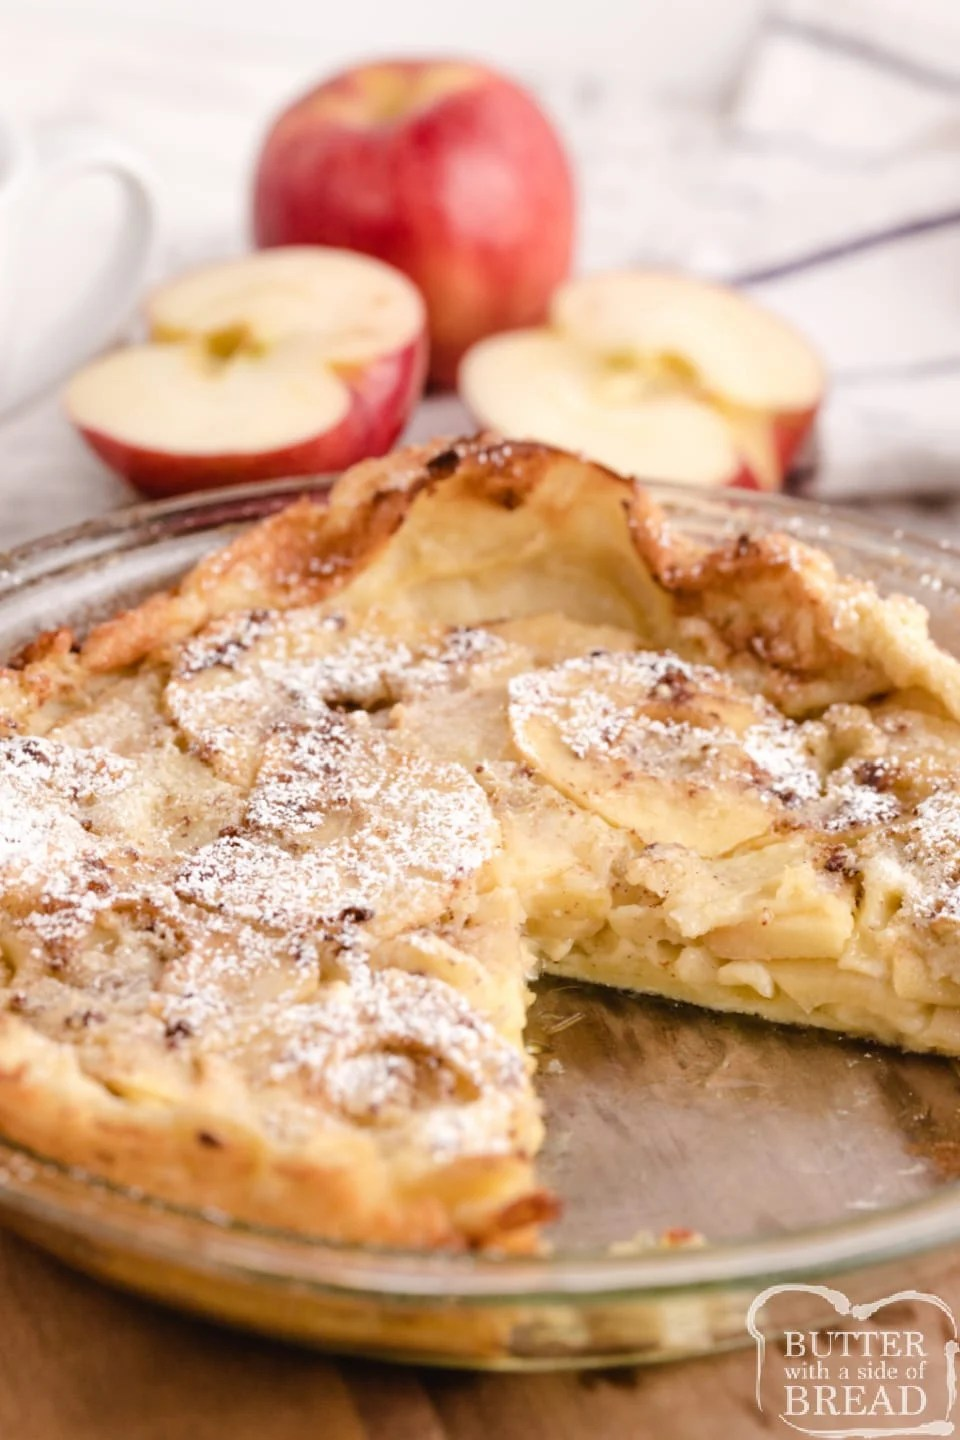 Apple German Pancake, also known as a Dutch Baby Pancake, made with flour, milk, eggs and fresh apples. The apples add so much flavor to this classic German pancake recipe!